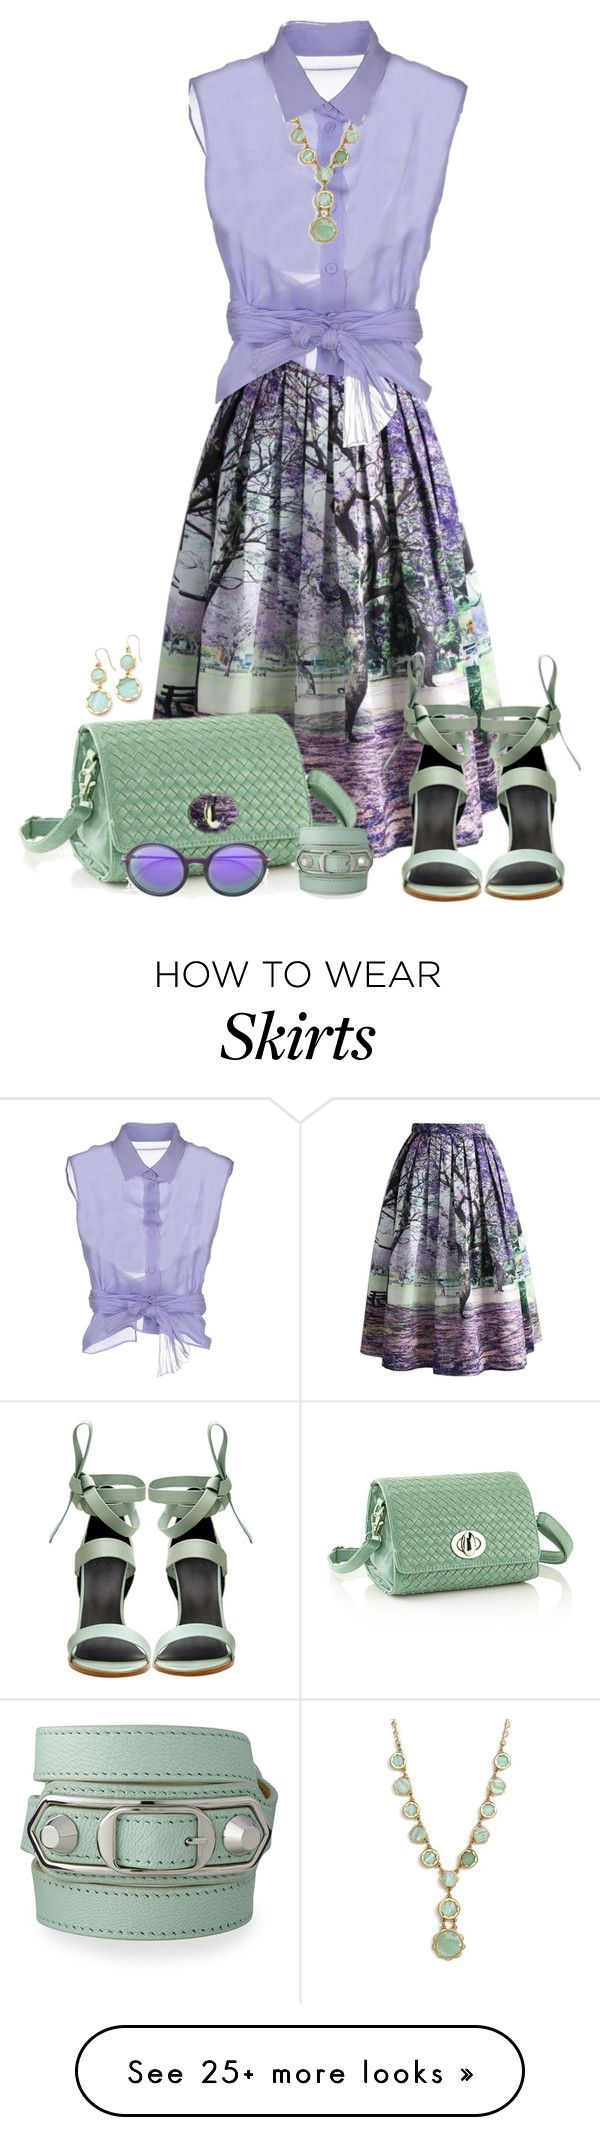 """Midi Skirt for Spring"" by autumnwolf1965 on Polyvore featuring Chicwish, Alberta Ferretti, TIBI, Kate Spade, Balenciaga and Ray-Ban"